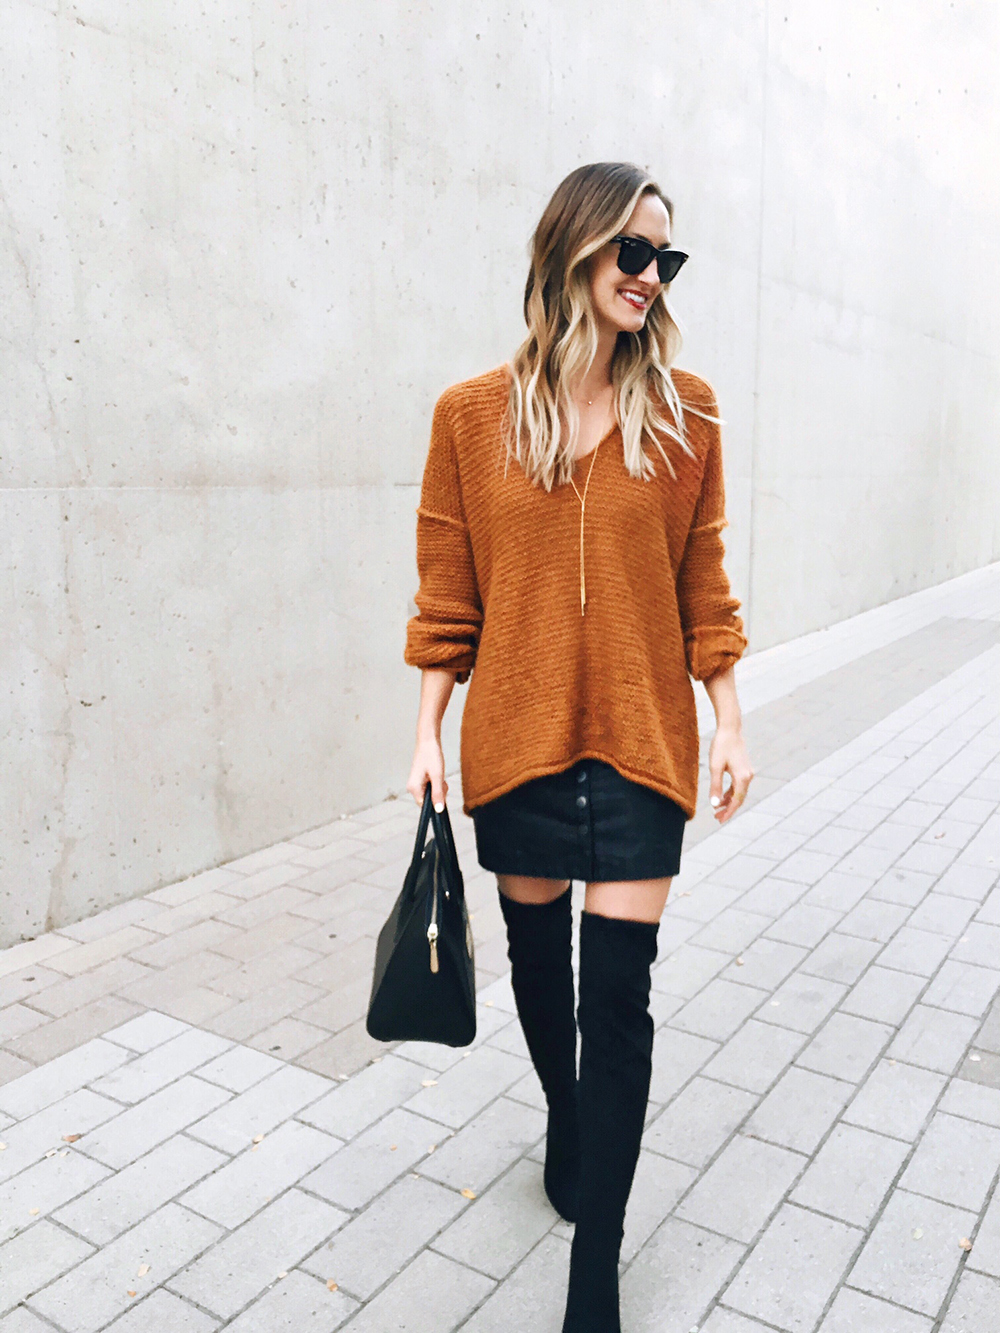 livvyland-blog-olivia-watson-instagram-roundup-december-cozy-mustard-knit-sweater-otk-boots-black-yellow